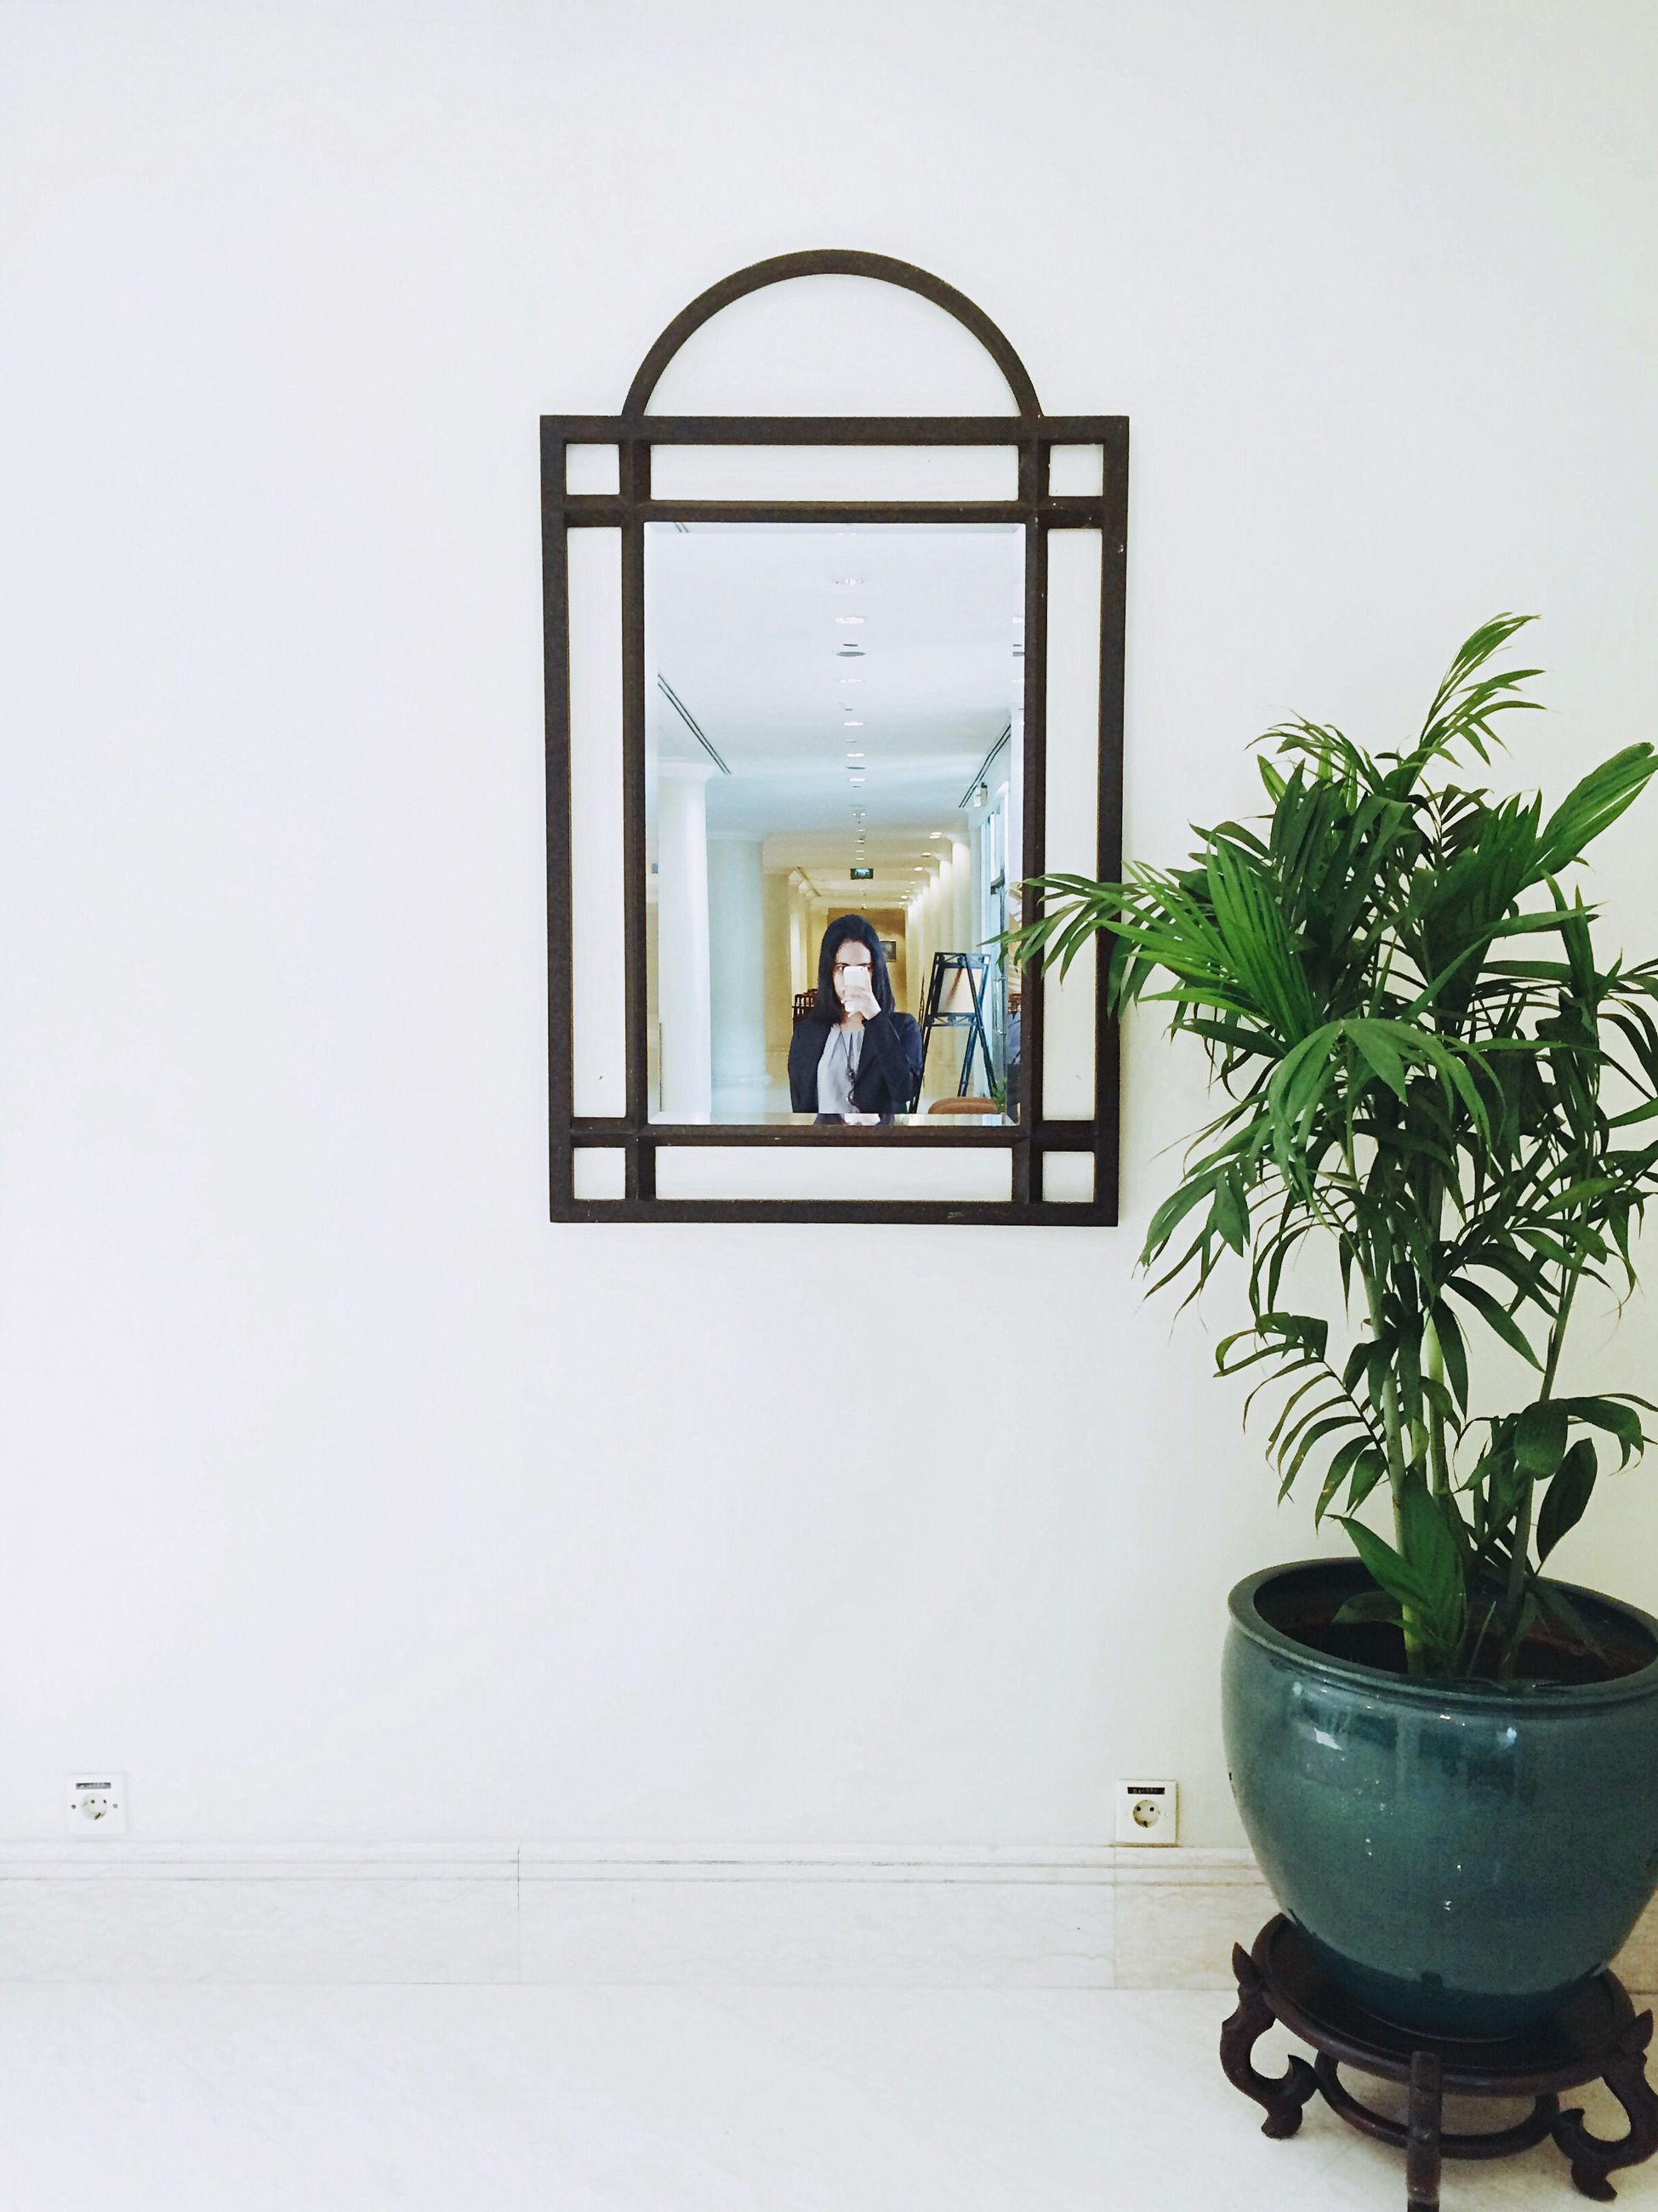 indoors, architecture, low angle view, built structure, glass - material, window, clear sky, lighting equipment, potted plant, mirror, day, wall - building feature, transparent, technology, copy space, men, hanging, reflection, full length